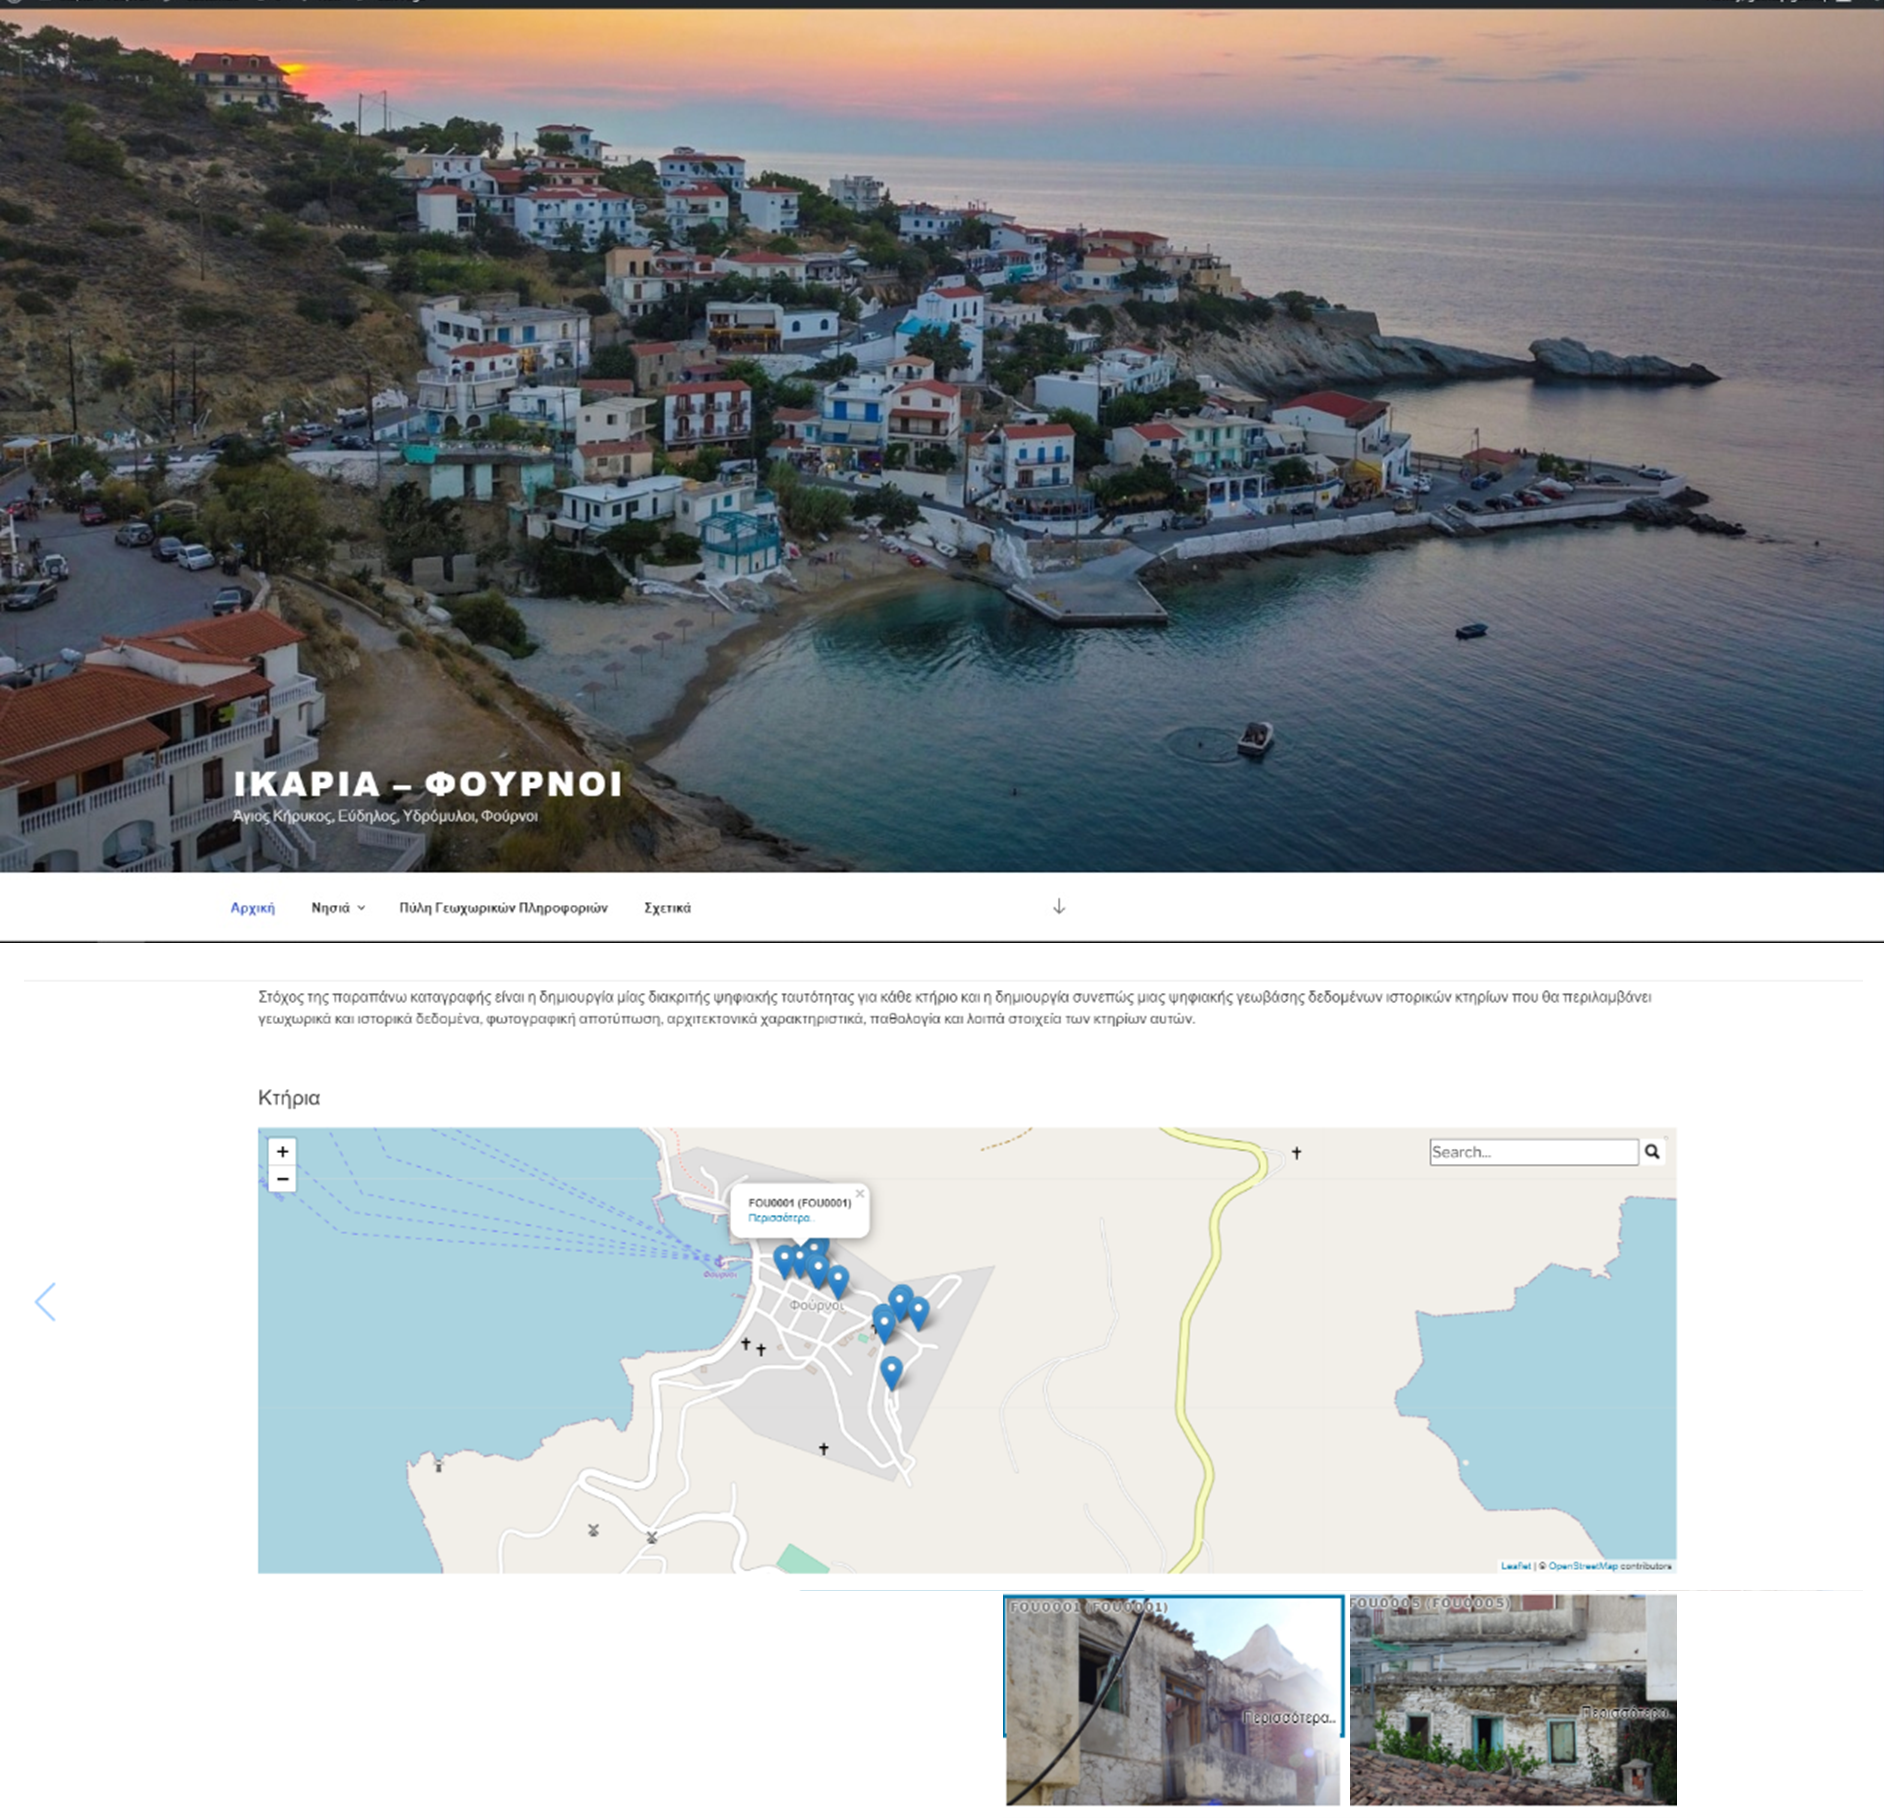 """COMPLETION OF THE PROJECT """"DESIGN AND DEVELOPMENT OF COLLECTION, MANAGEMENT AND DISSEMINATION OF HISTORIC BUILDINGS INFORMATION SOFTWARE IN SETTLEMENTS LOCATED IN THE NORTH AEGEAN REGION"""""""